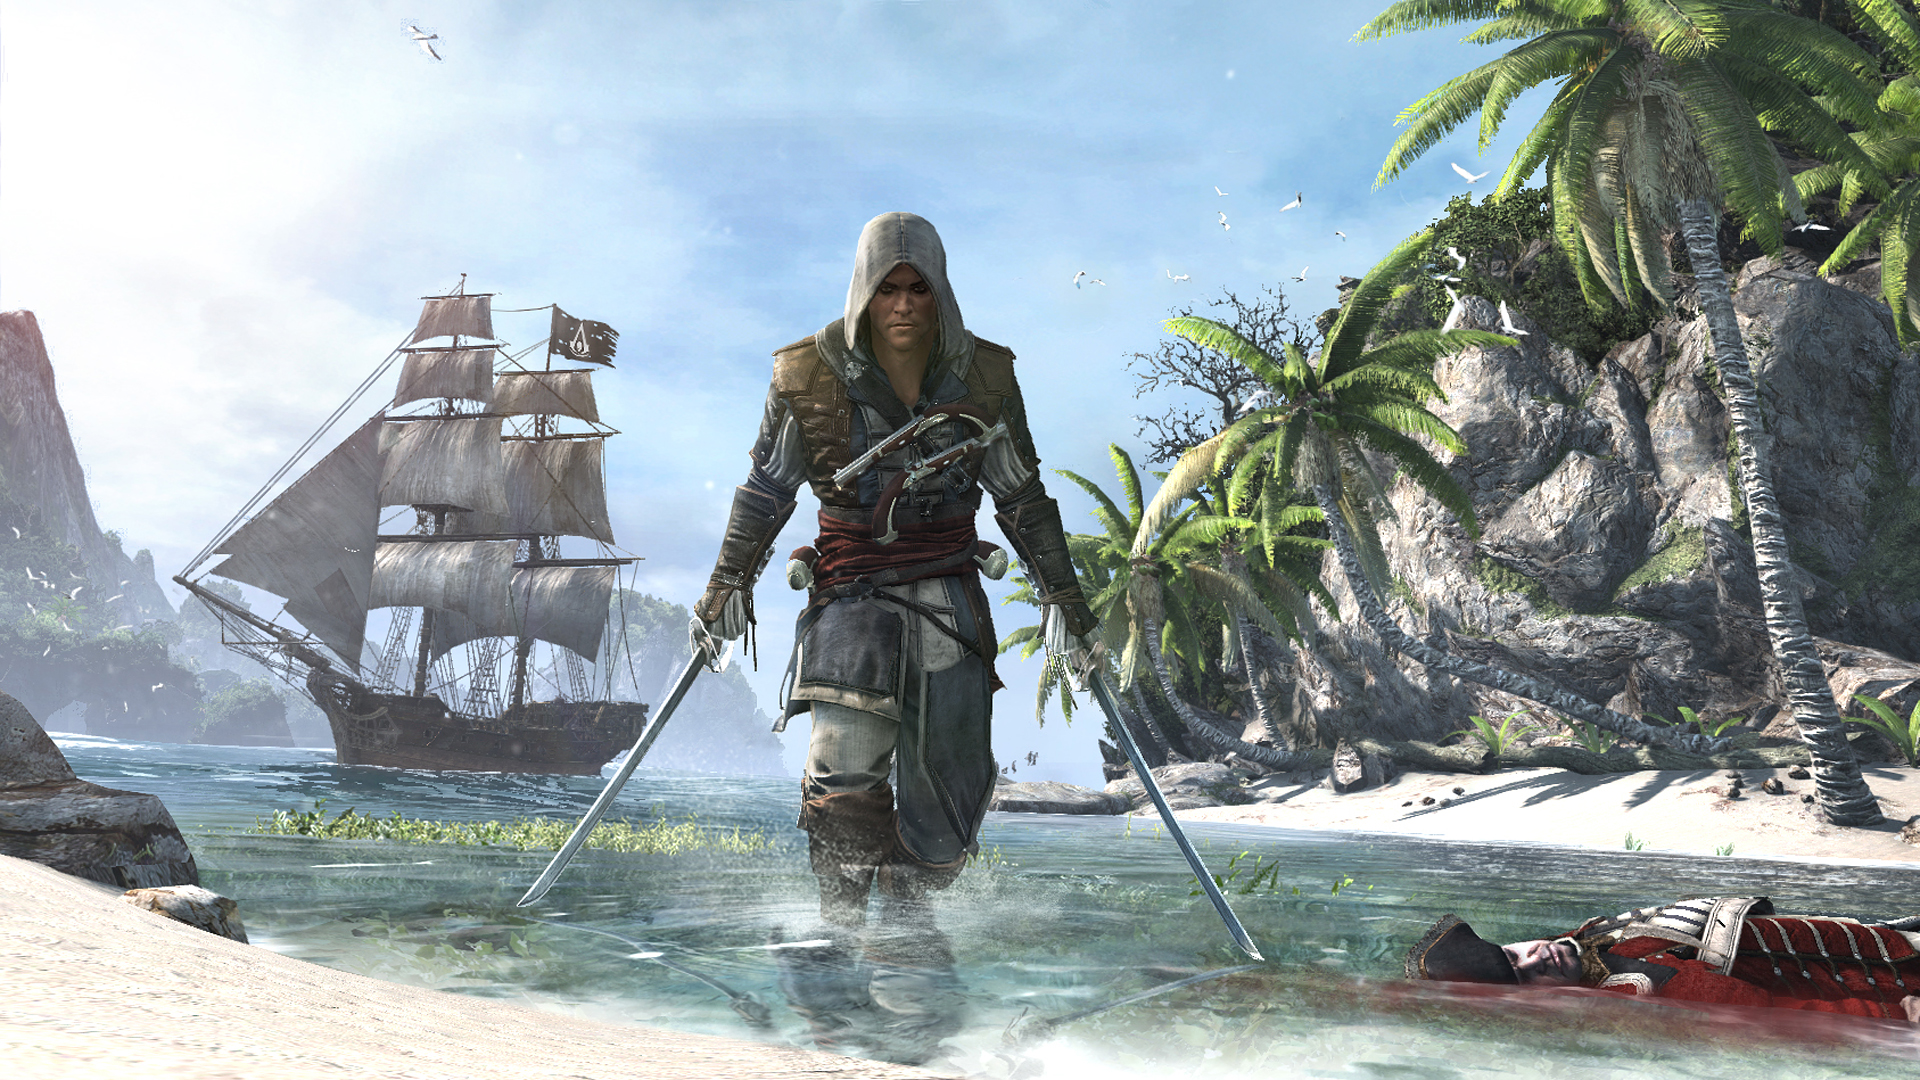 ac4bfscsp01iiconicposeedward.jpg Assassin's Creed IV: Black Flag Review